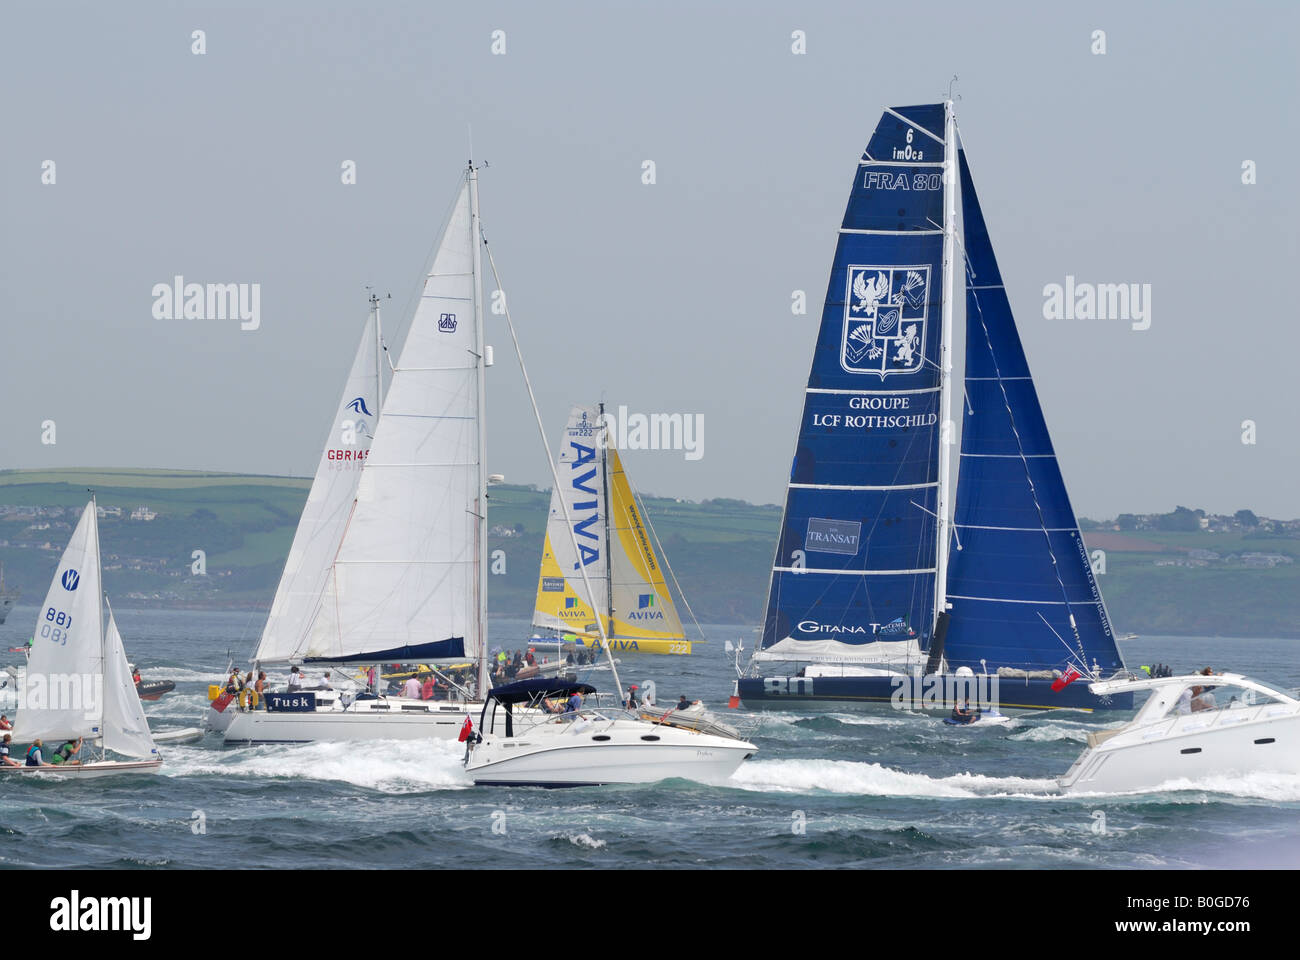 Yachts in Plymouth Harbour at the start of the 2008 Transat transatlantic race Stock Photo